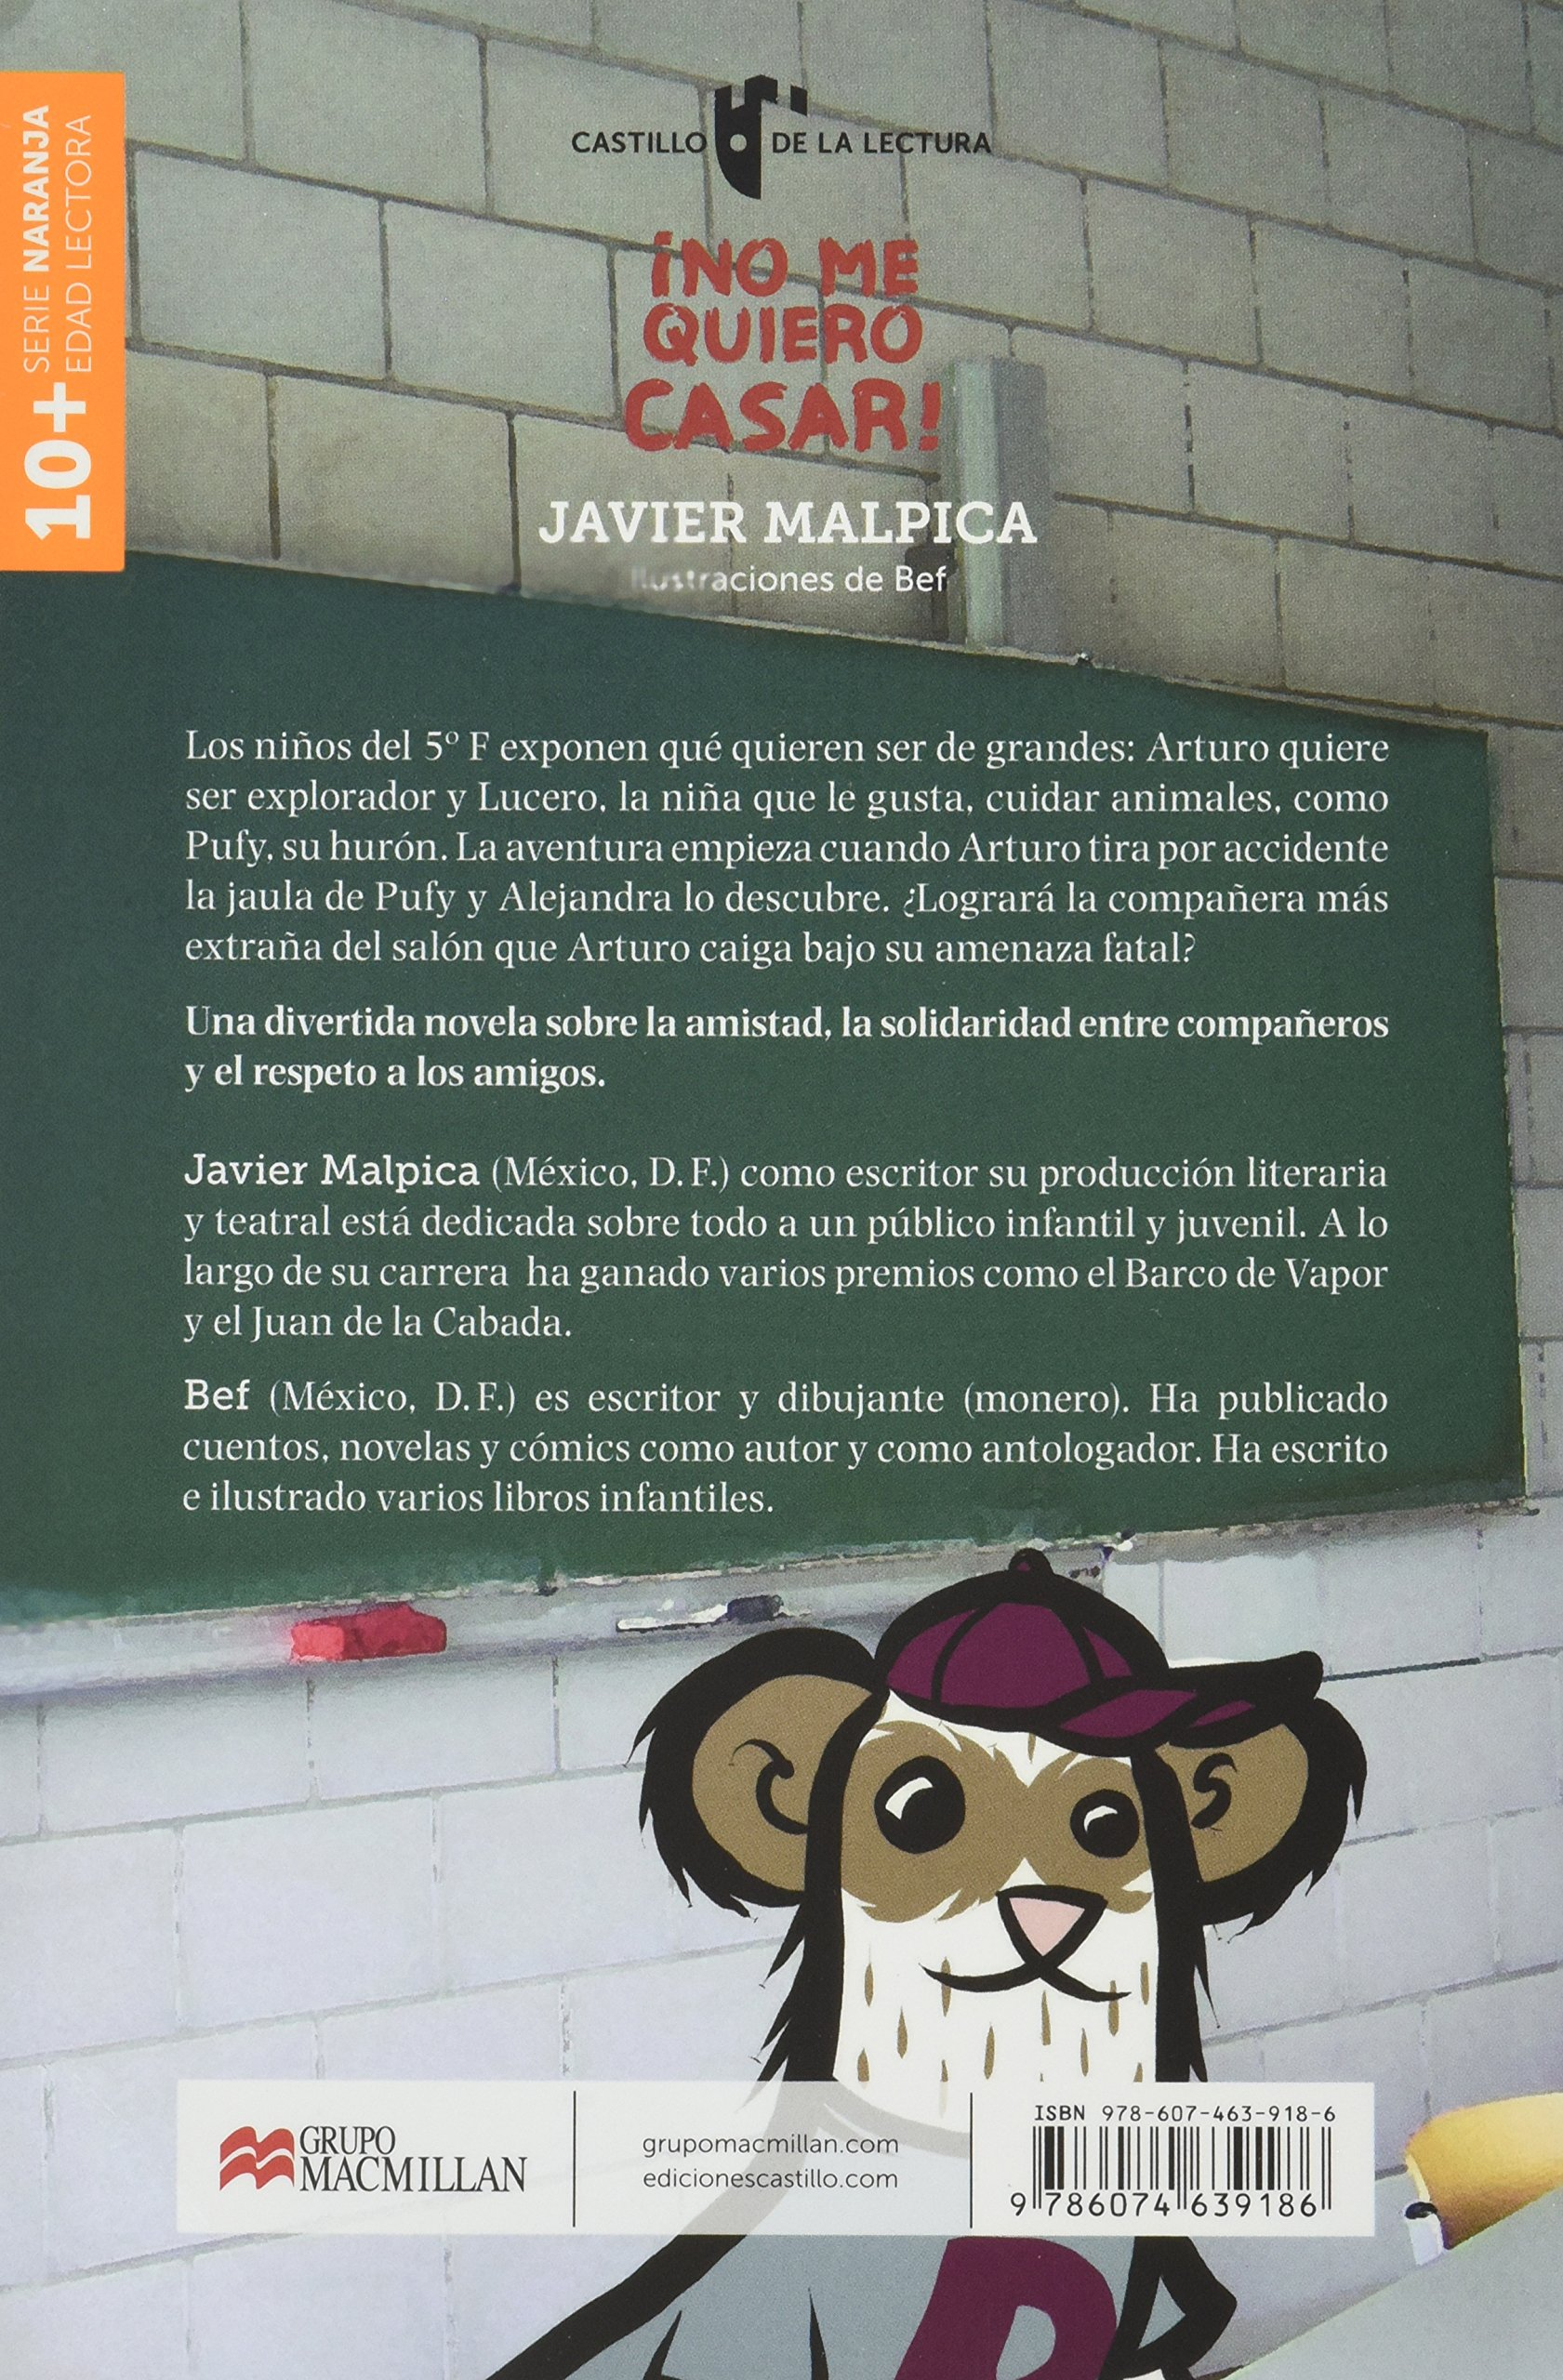 No me quiero casar SN 1E MA: Javier Malpica: 9786074639186: Amazon.com: Books